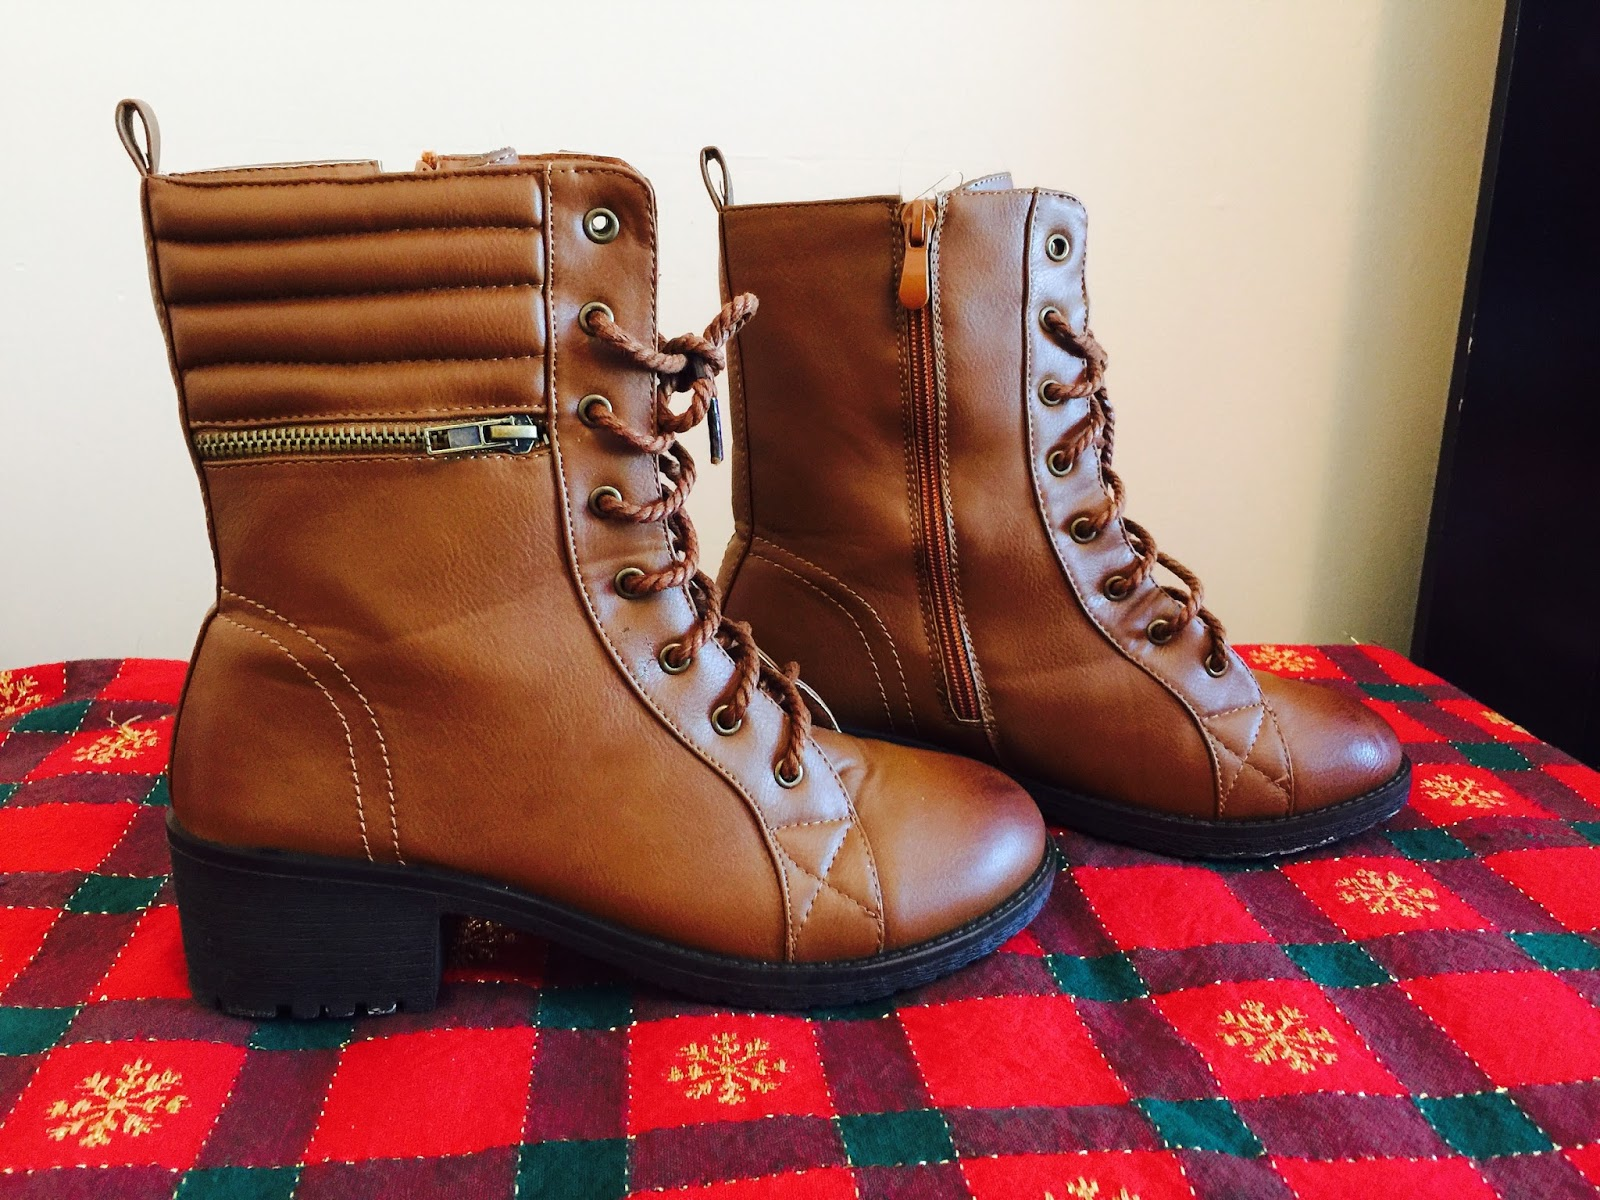 zooshoo shoes review, zooshoo, shoes, ankle boots review, ankle booties, booties, Casual Combat Lace up Moto Bootie with Cushion Cuff Zipper Boot